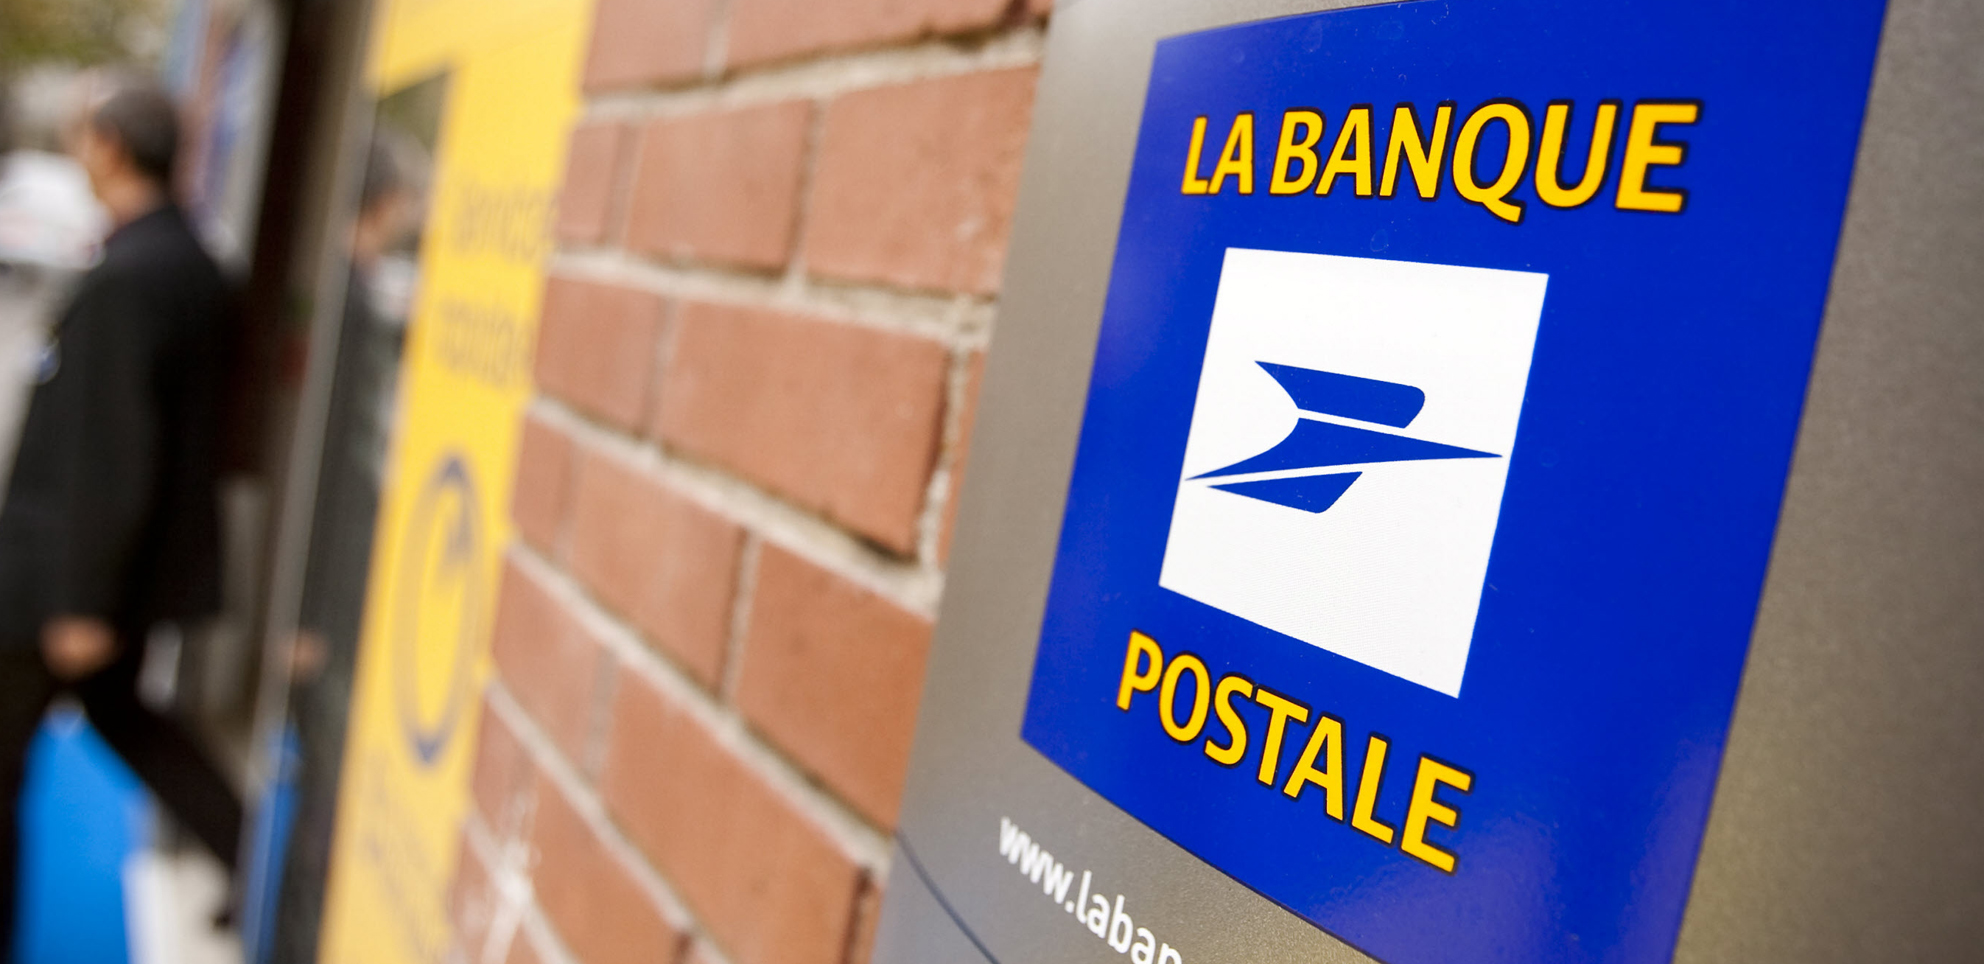 banque postale_crowdfunding